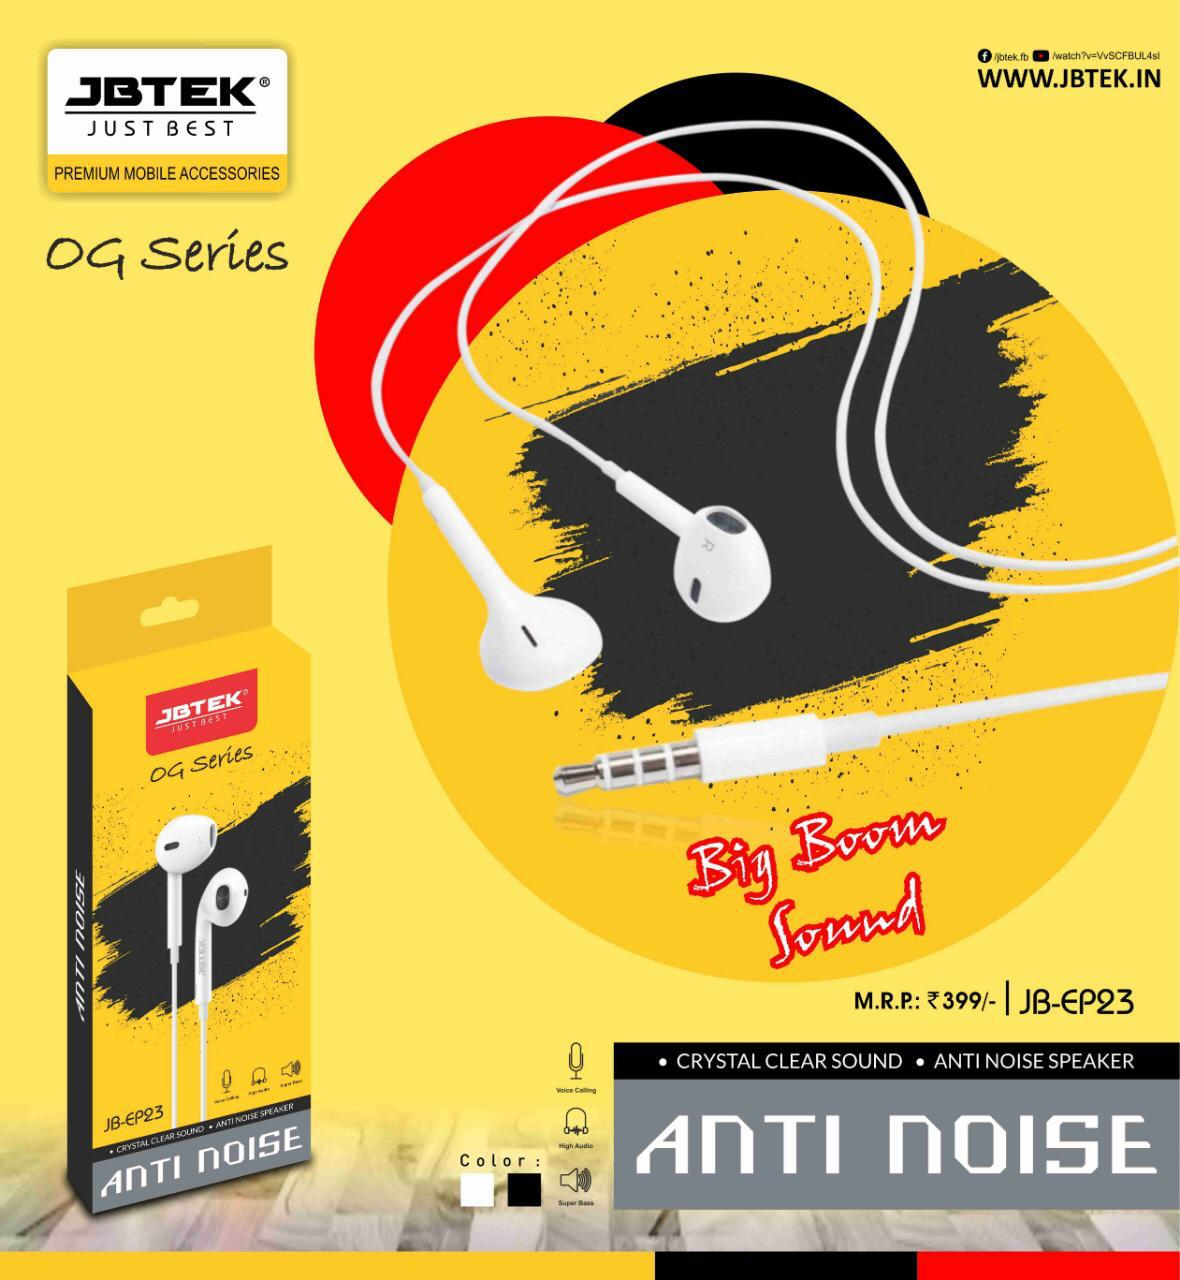 jbtek earphone price iphone pattern